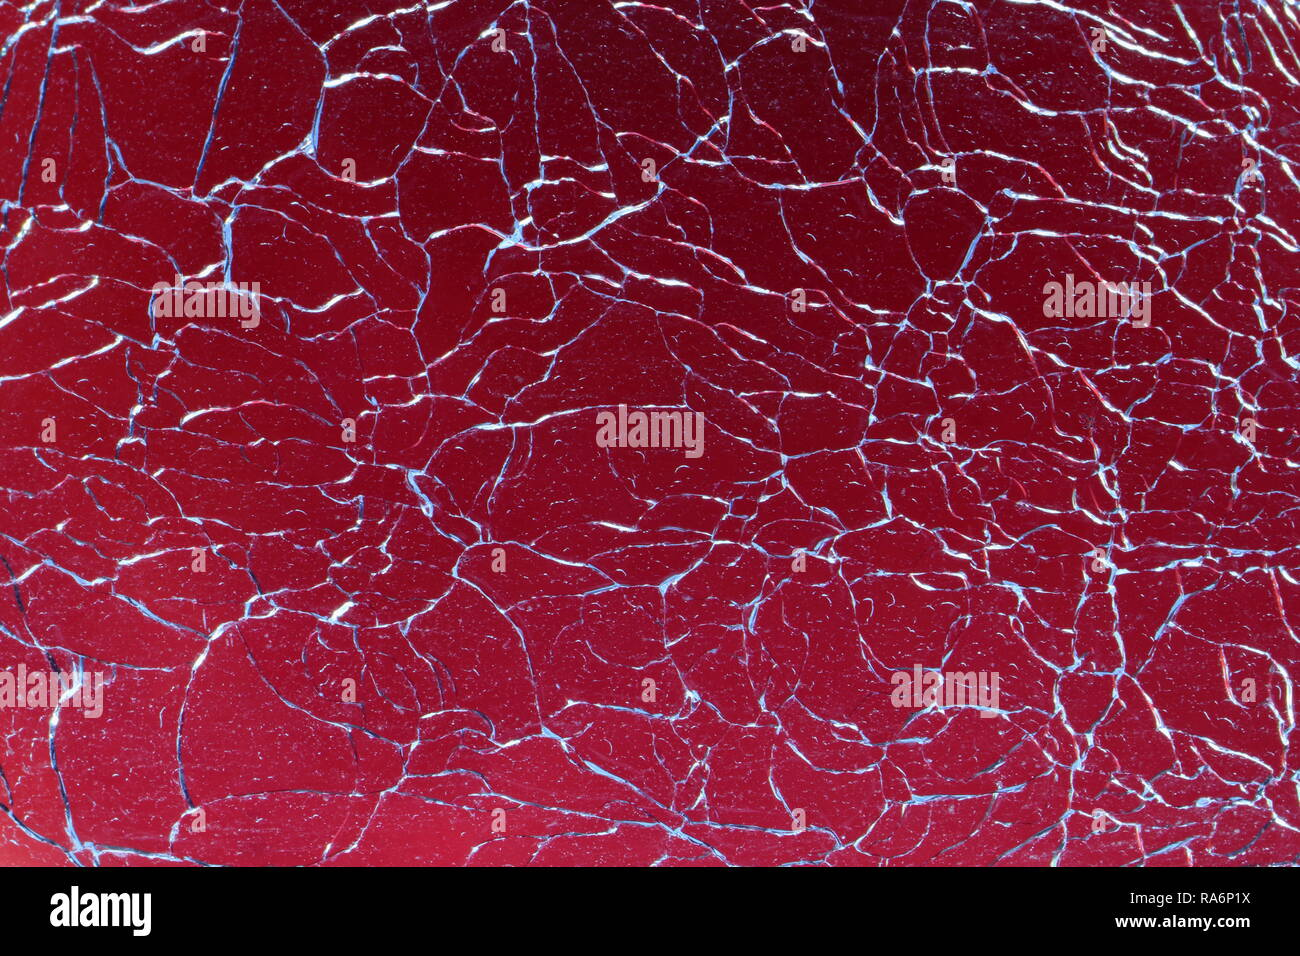 Abstract broken glass design background. Cracked, shattered glass against red background. - Stock Image